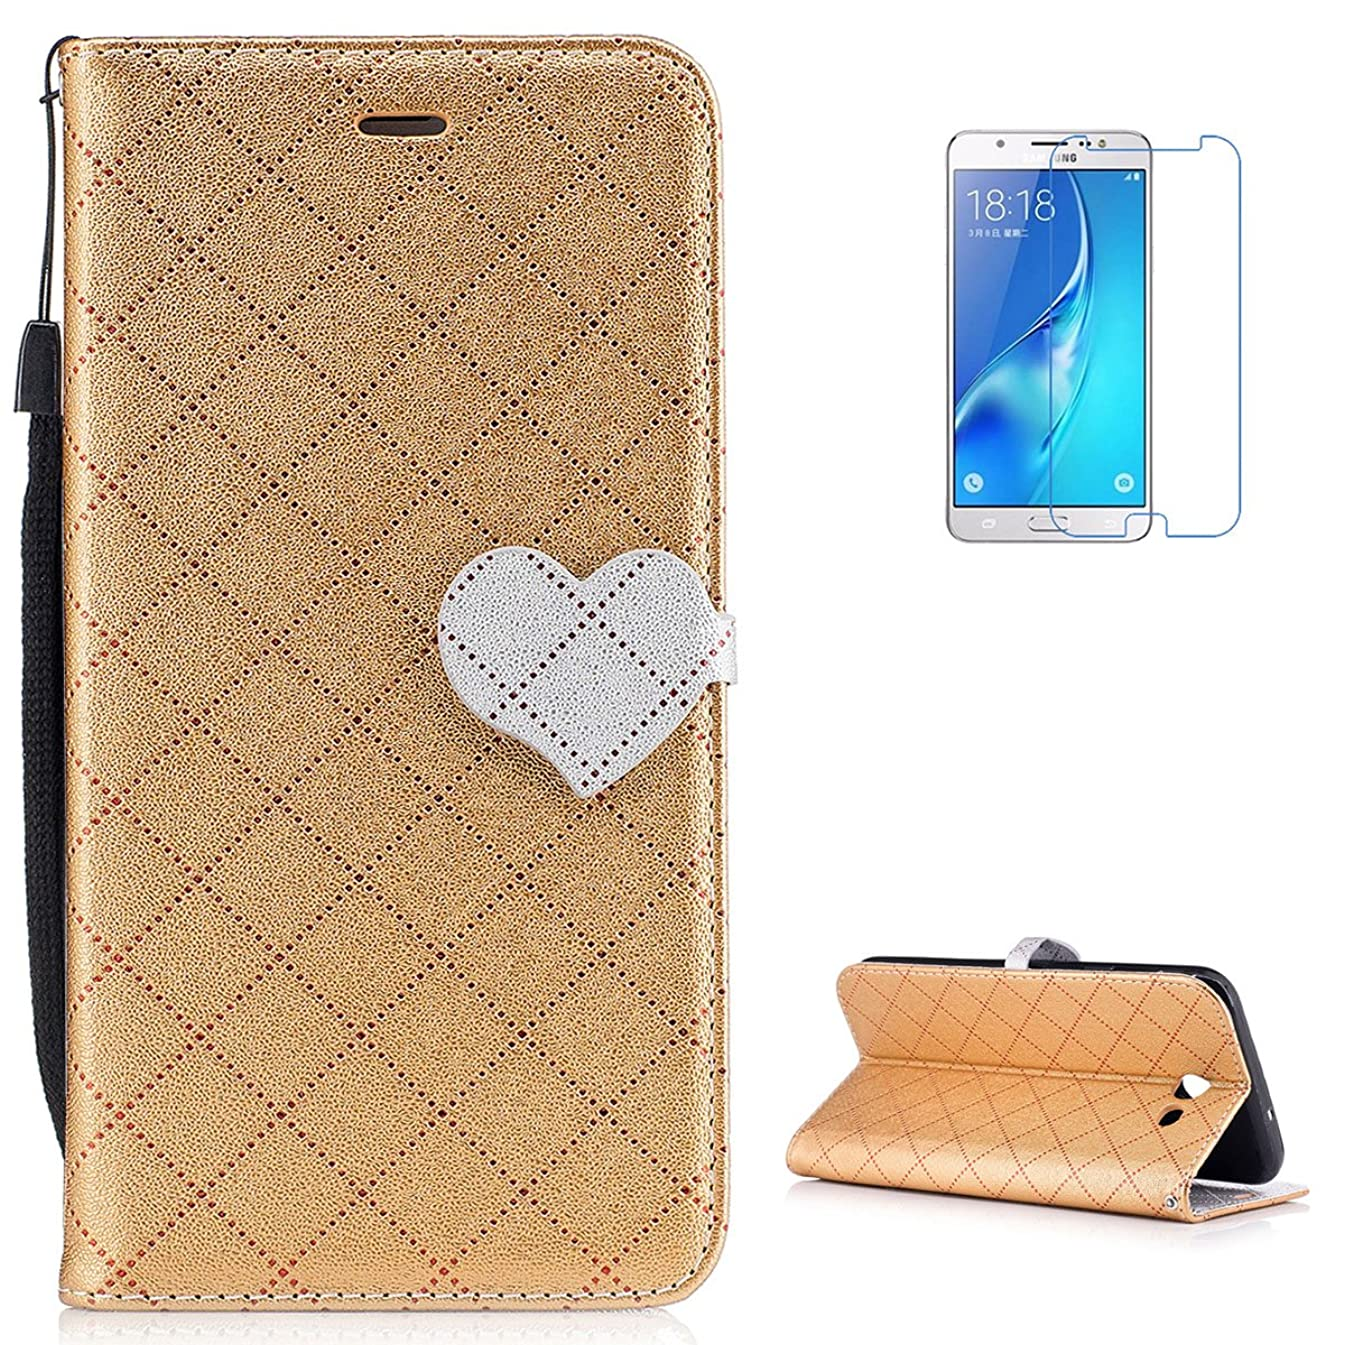 KaseHom Galaxy J7 2017/J720 Premium FILP Case [Free Screen Protector] Classic Love Heart Design Wallet Leather Folio Magnetic Holster with [Card Holder] Slim Shockproof Cover Shell - Golden